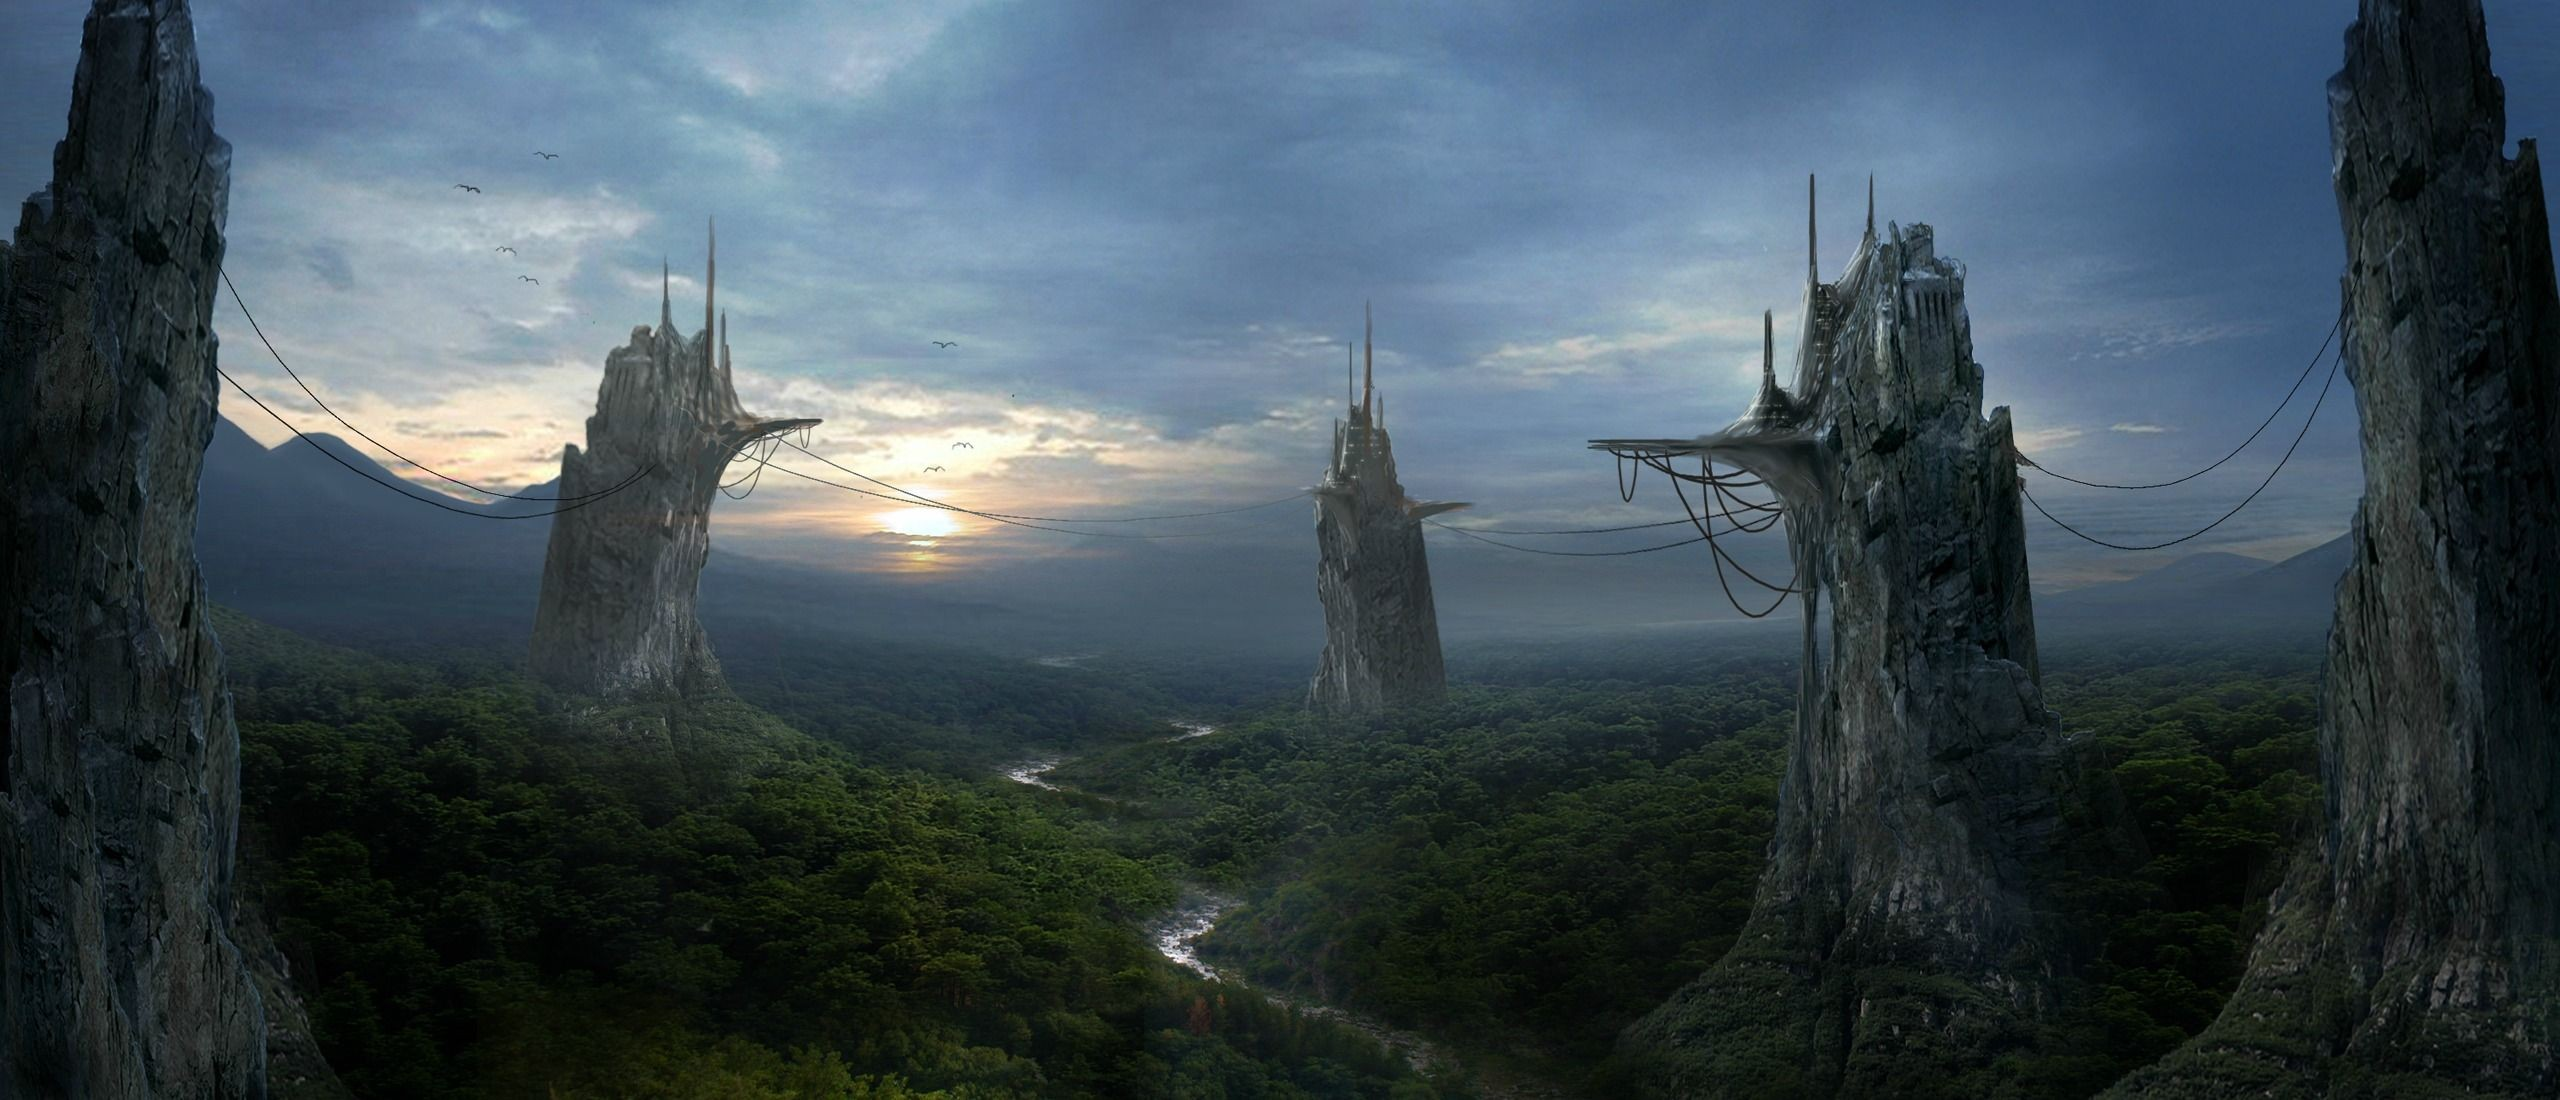 Fantasy castle wallpaper download free awesome wallpapers for desktop mobile laptop in any - Fantasy background ...